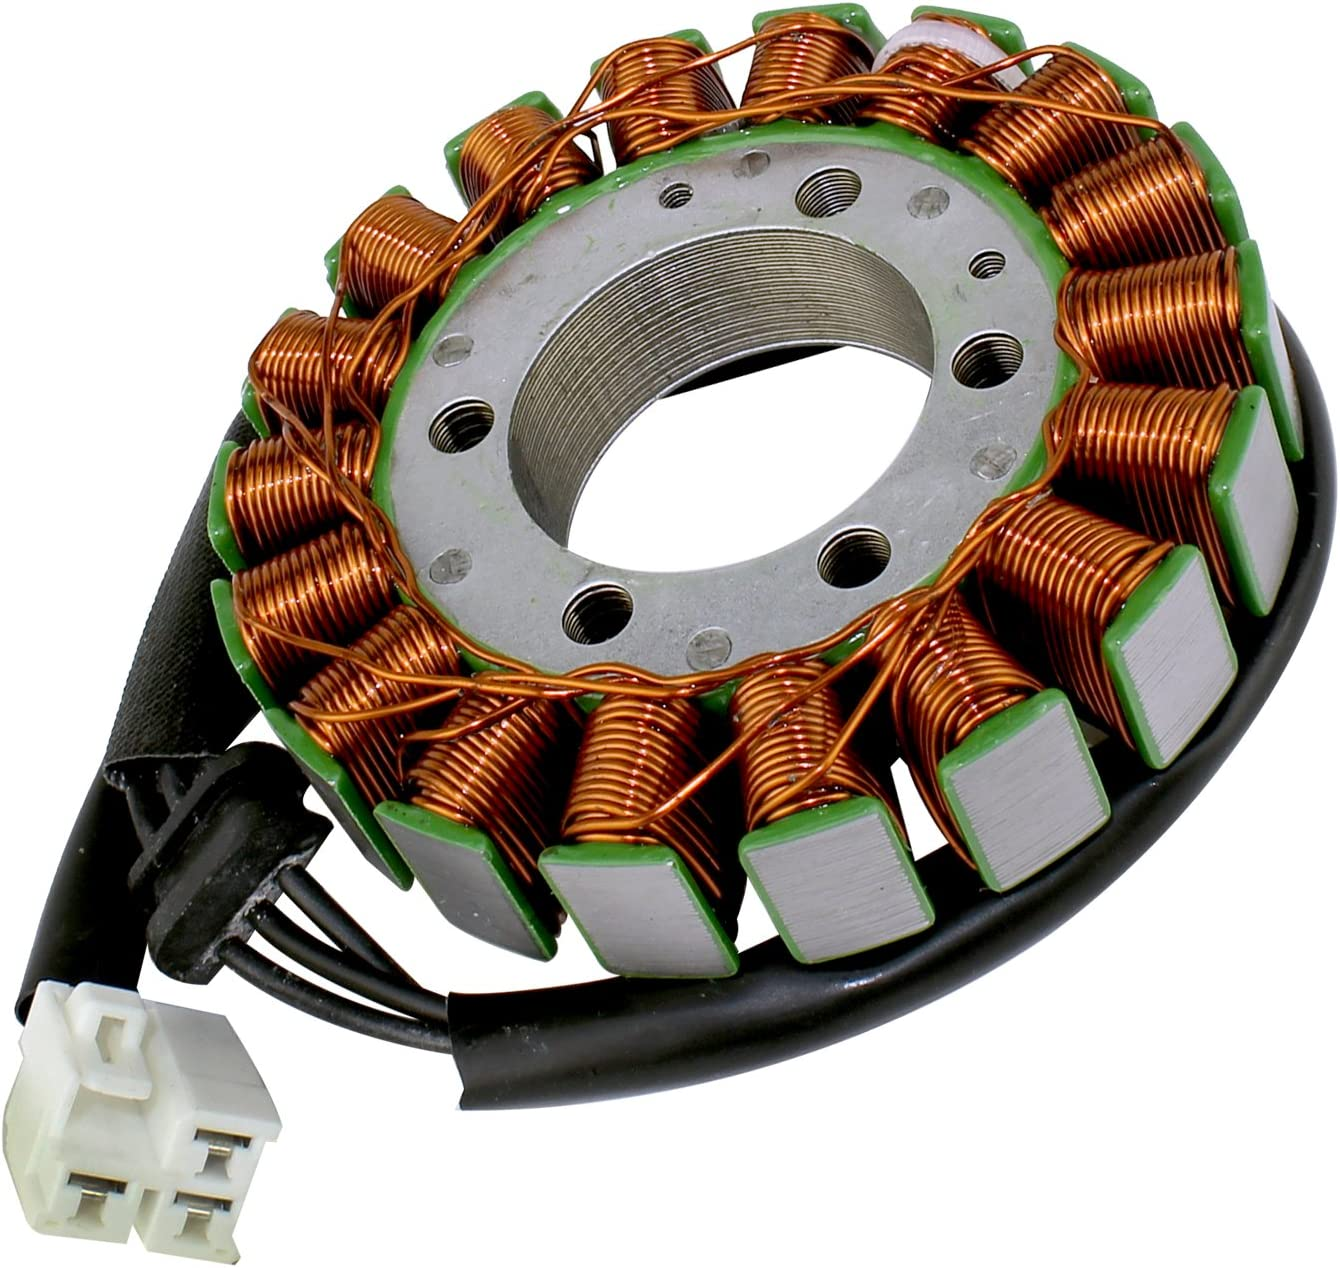 Amazon.com: Caltric Magneto Stator for Kawasaki Ninja 650 ...